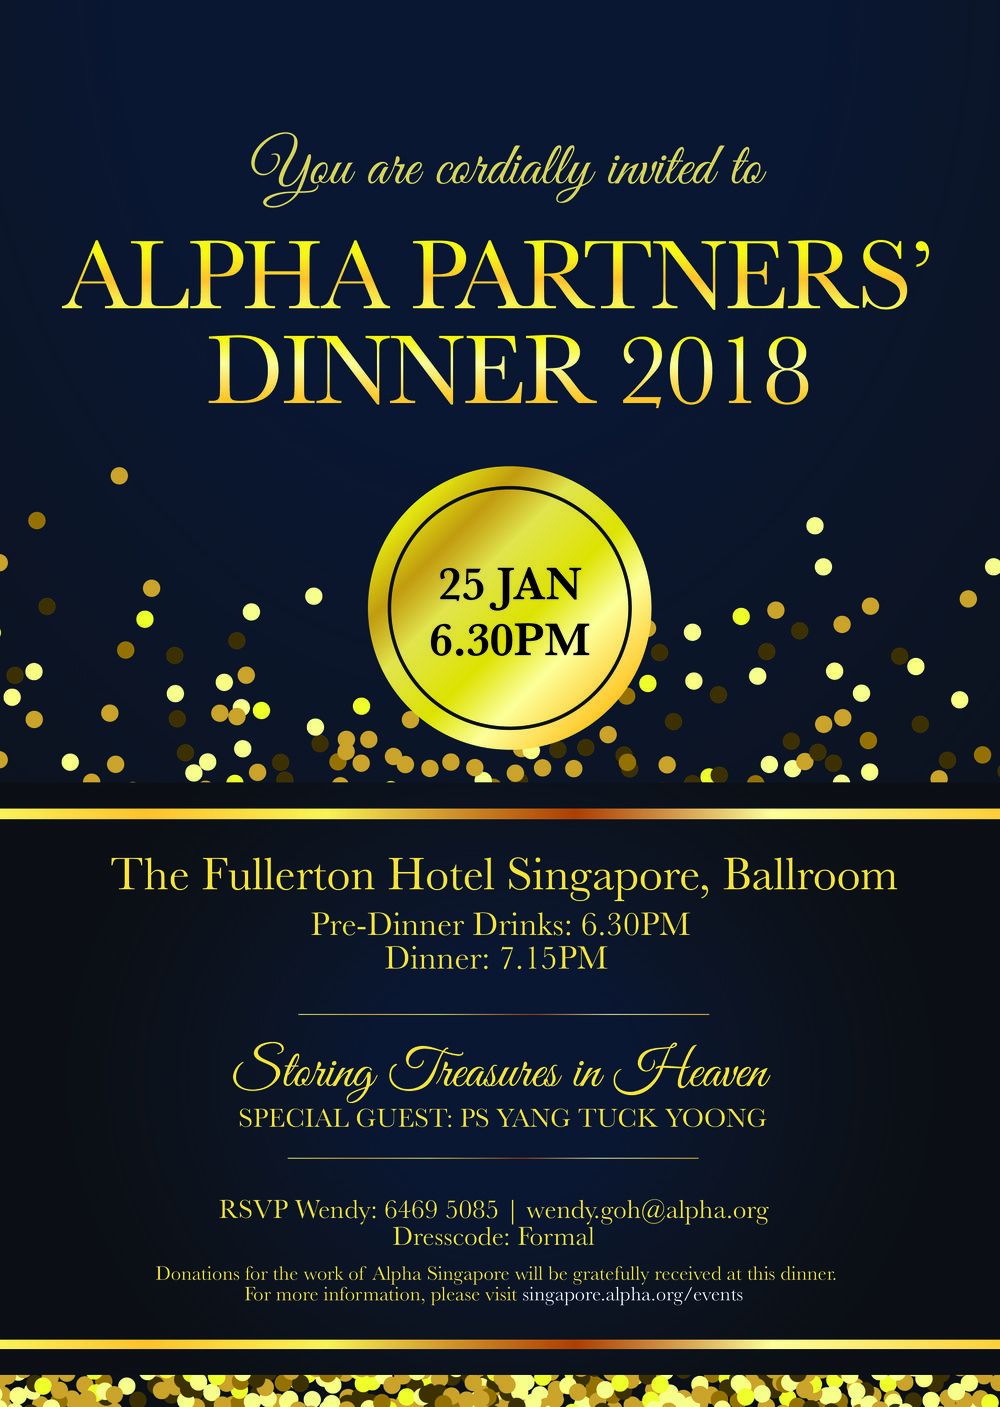 AlphaPartnersDinner2018_Invitation.jpg